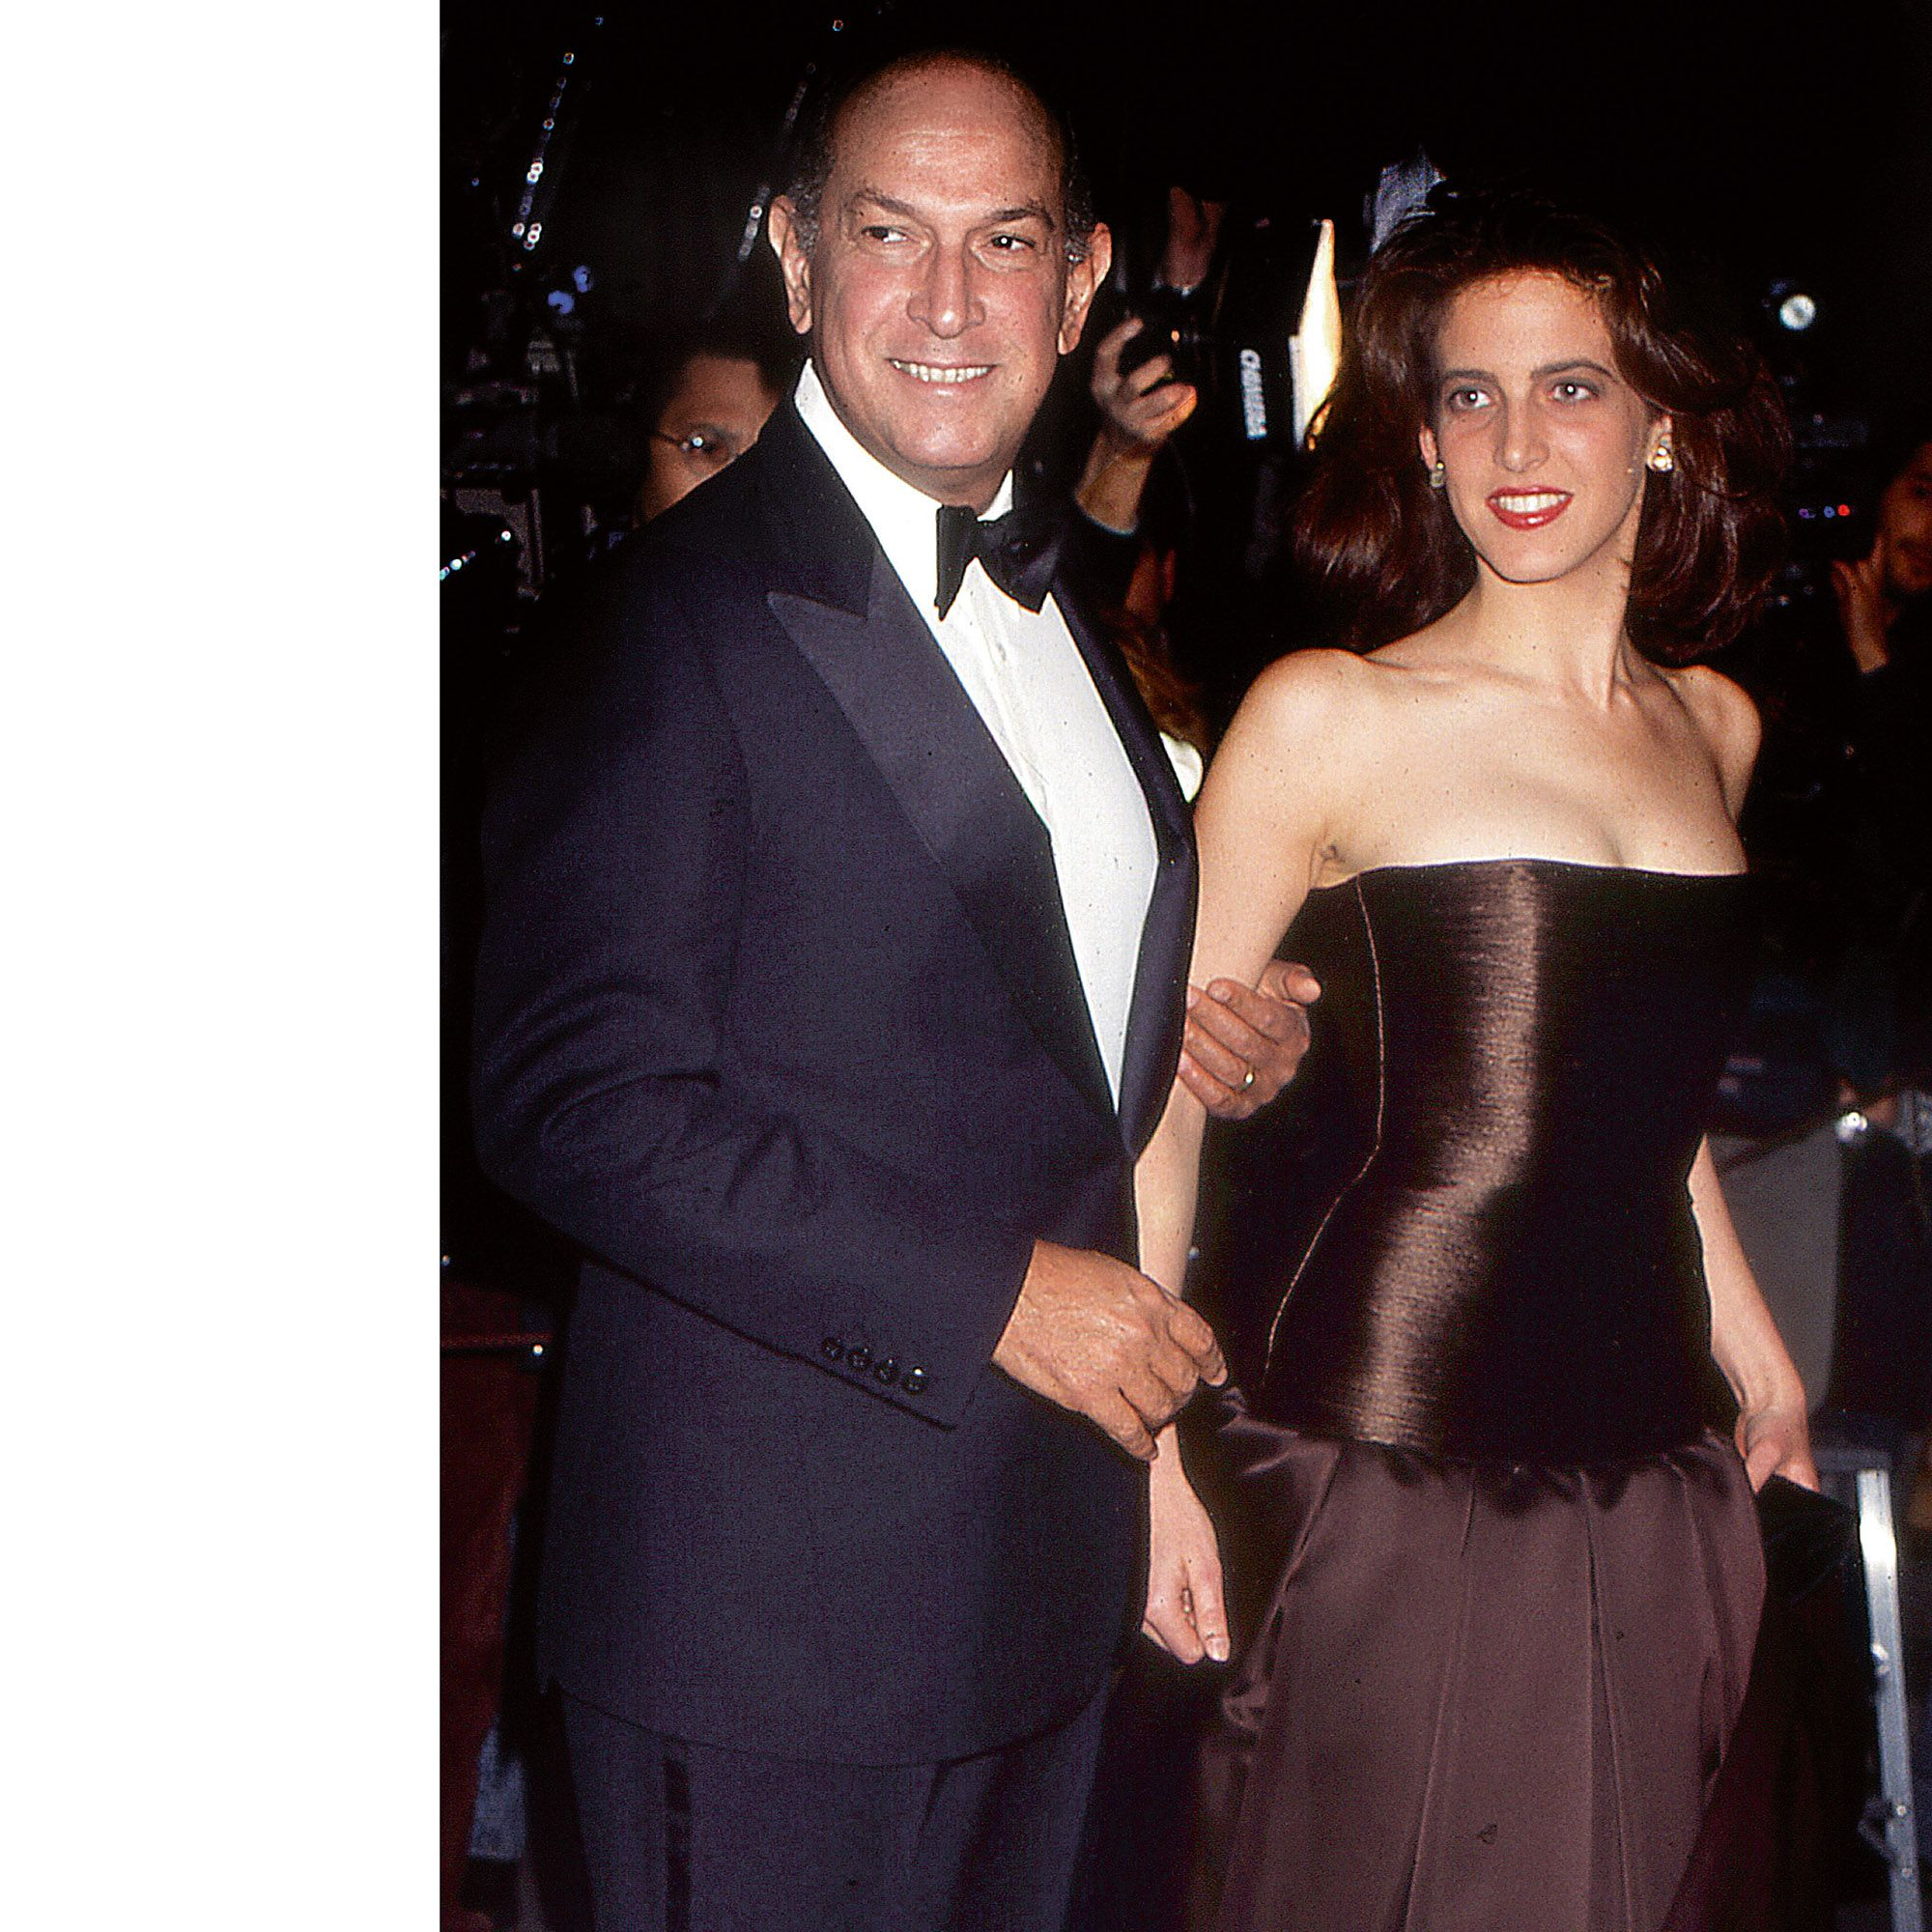 Costume Institute Gala, Metropolitan Museum of Art, 1996